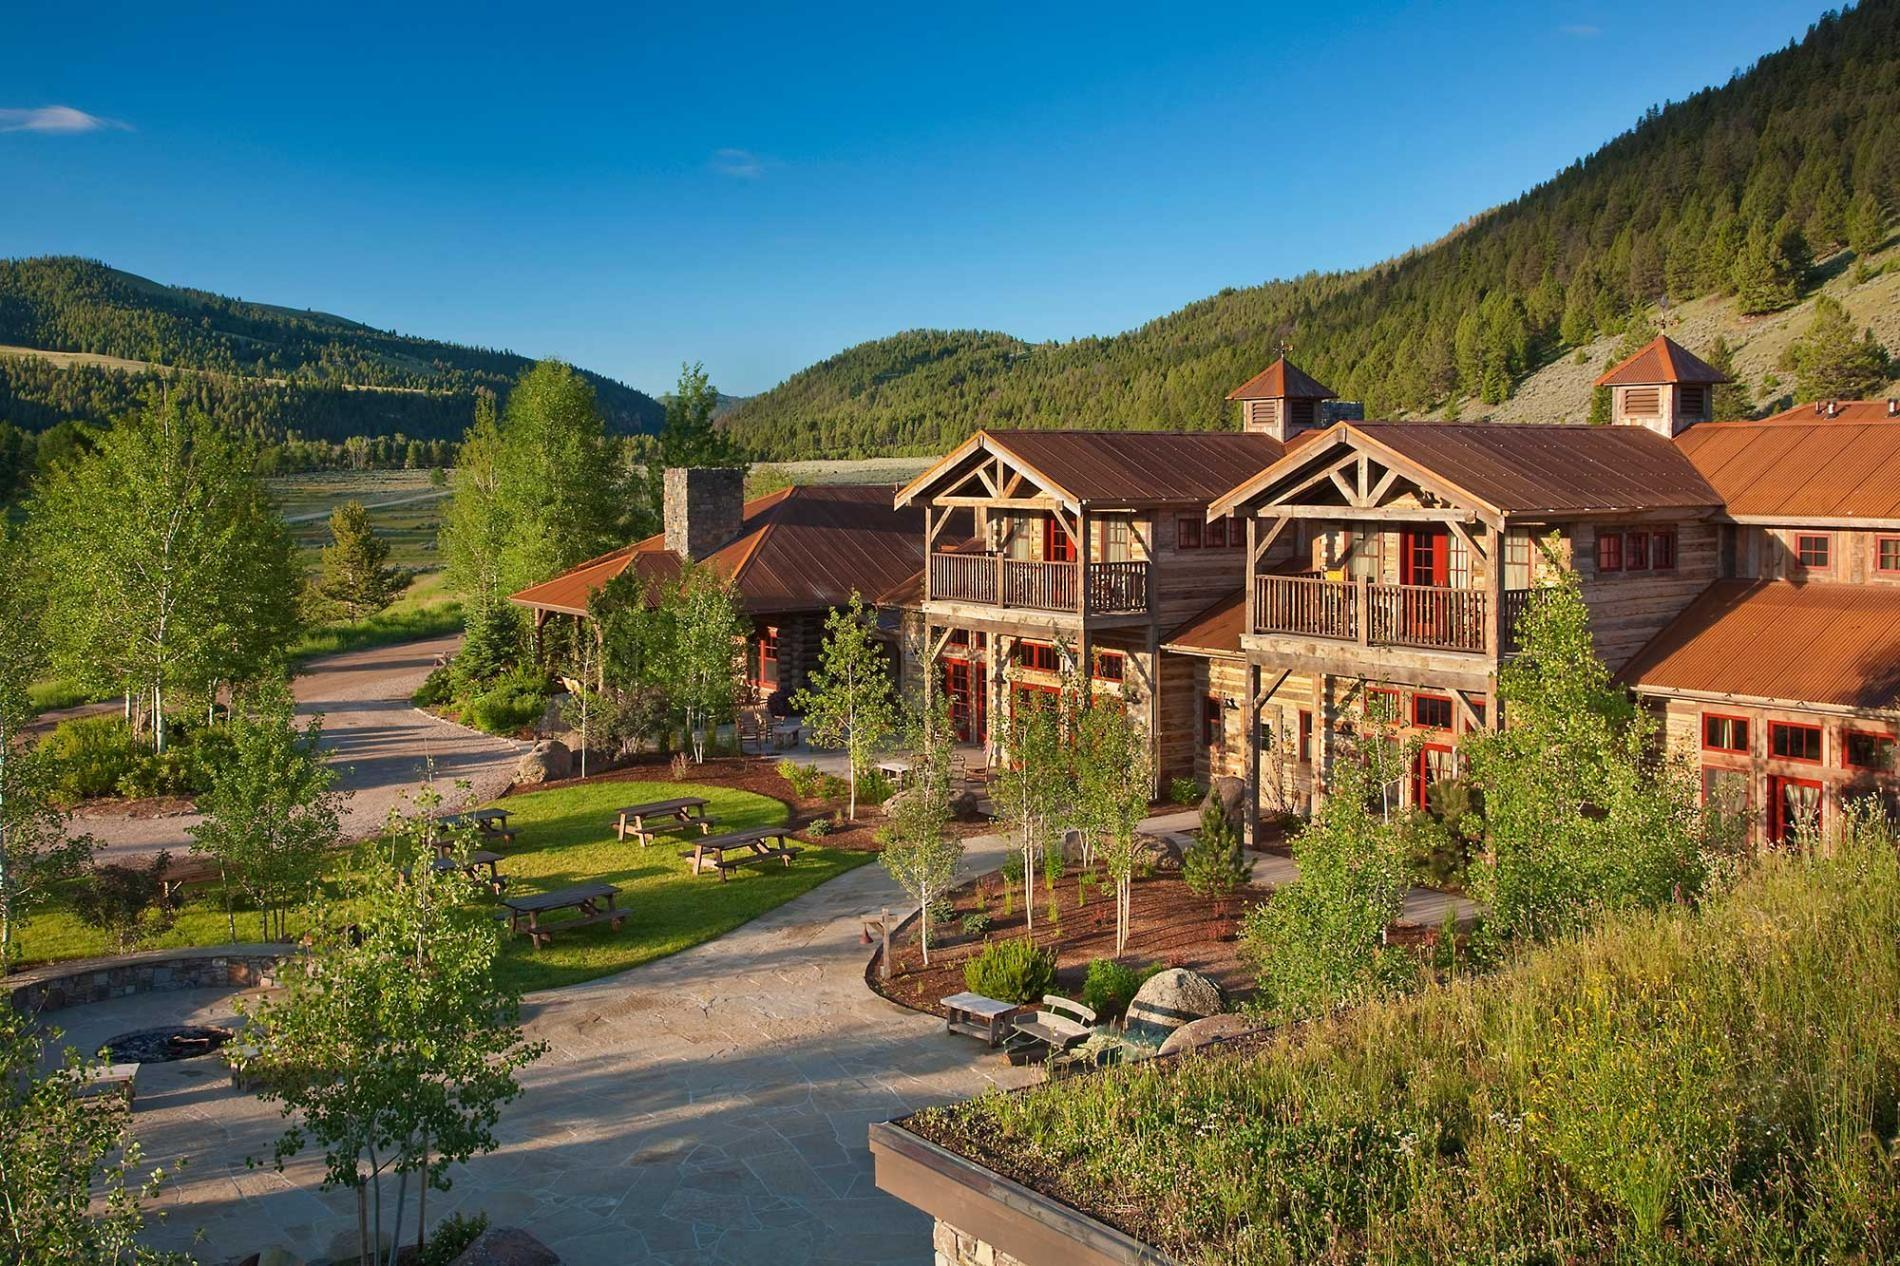 Ranch Rock Creek National Geographic Lodges